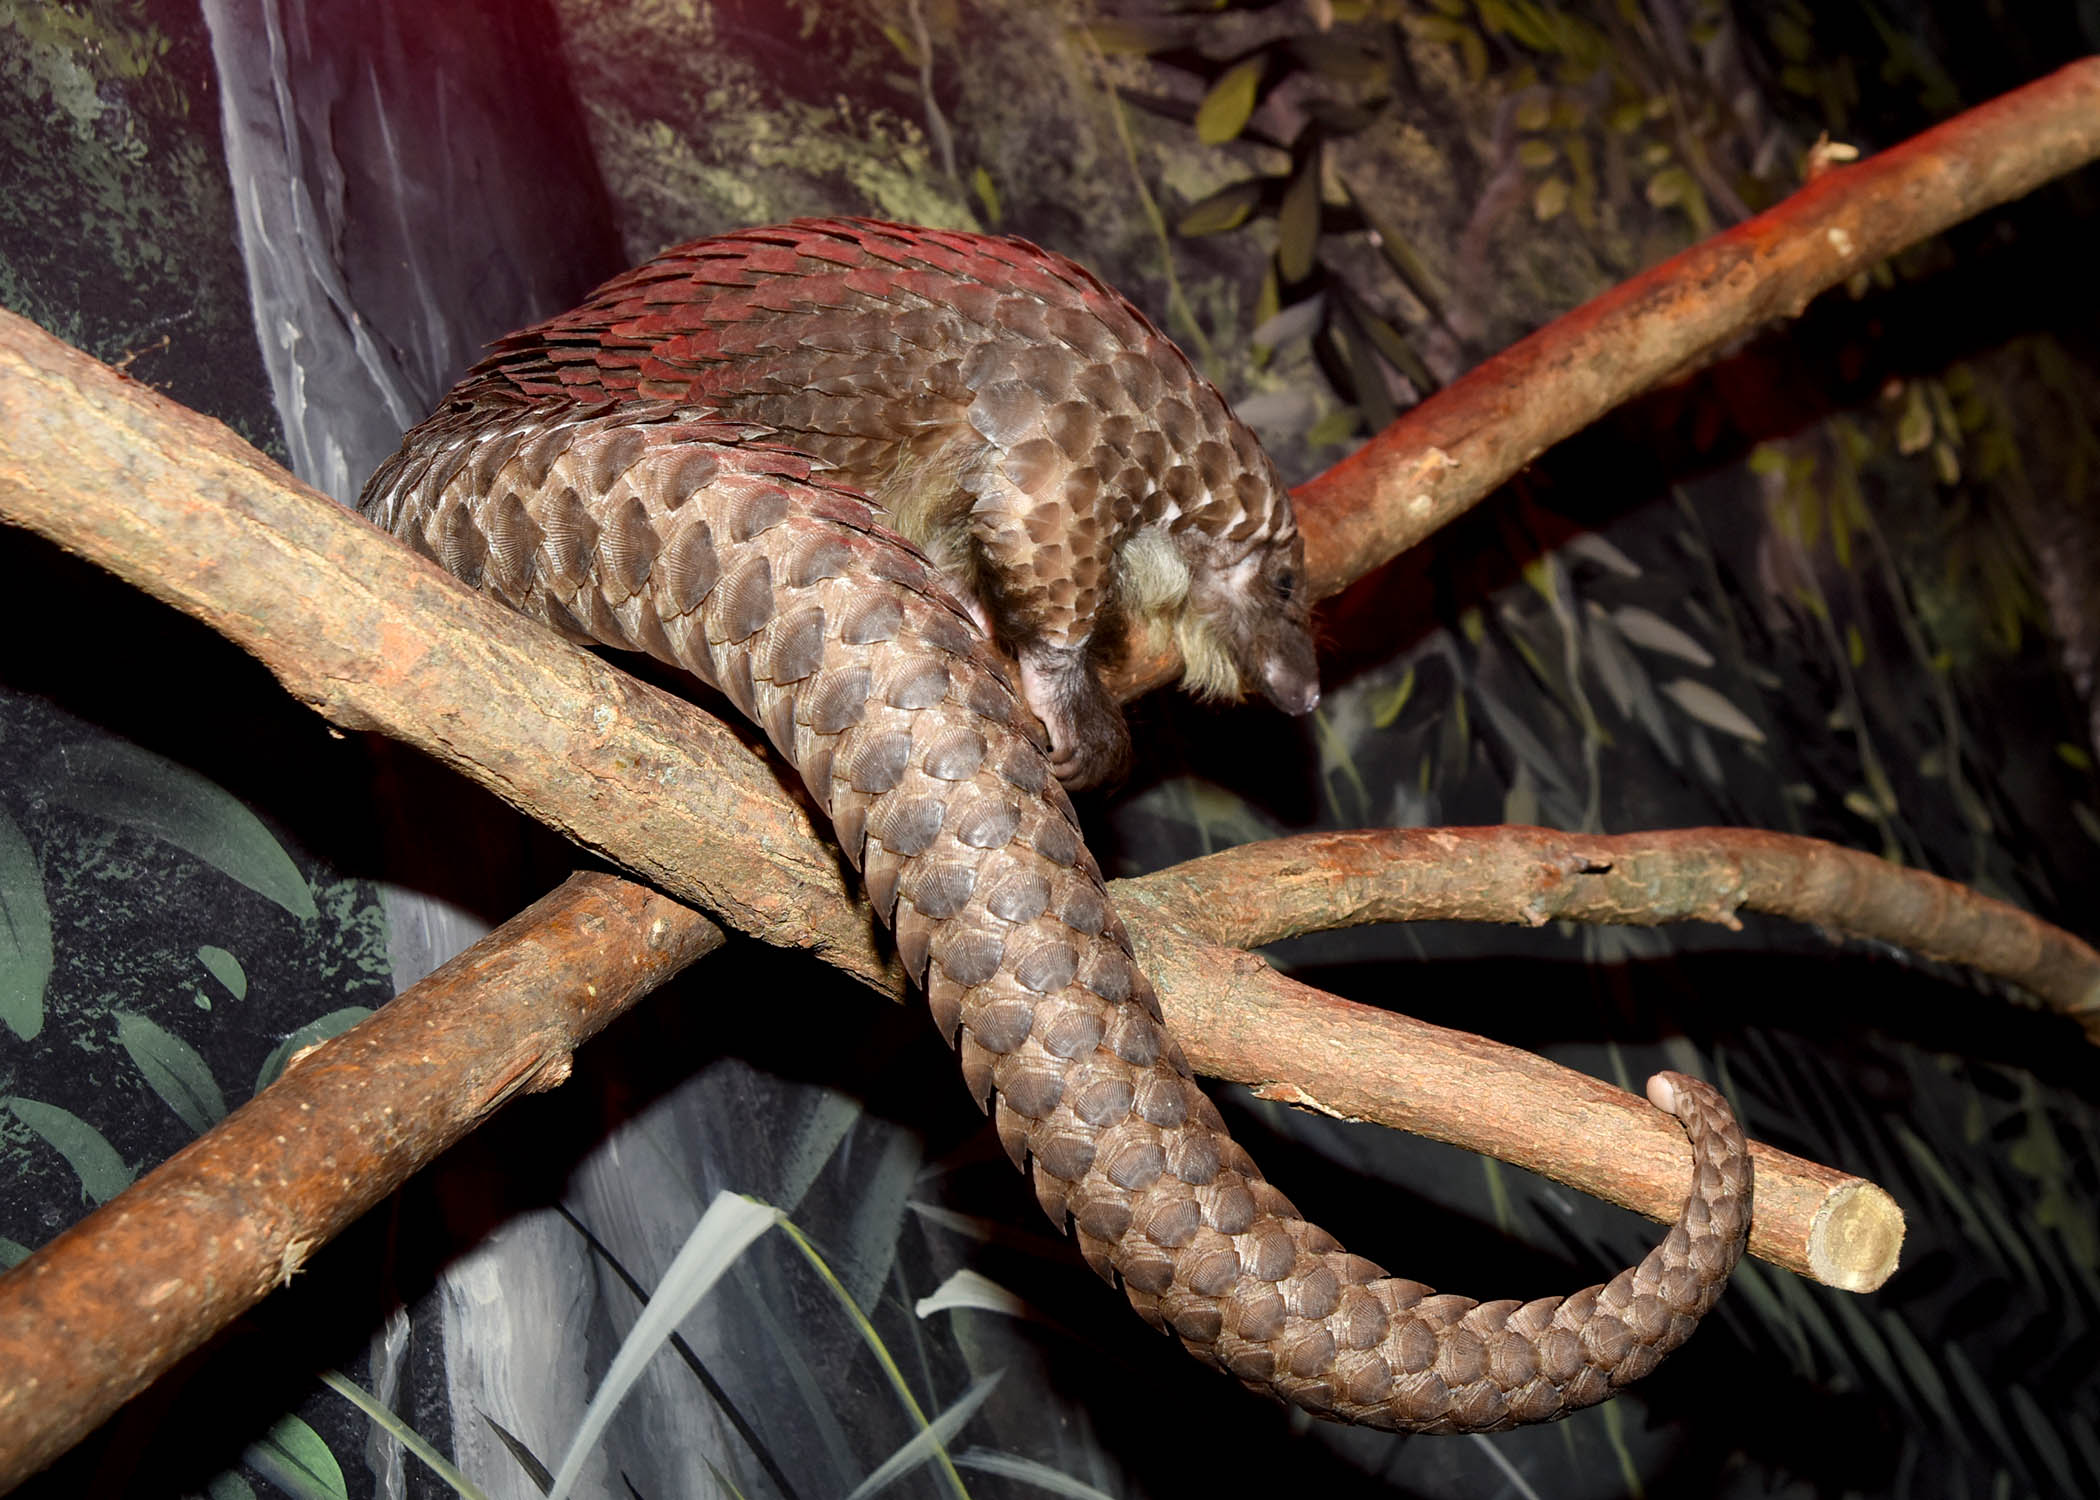 https://www.czs.org/Chicago-Zoological-Society/About/Press-room/2017-Press-Releases/Chicago-Zoological-Society-Leading-Conservation-Ef/DSC_8343-Pangolin.aspx